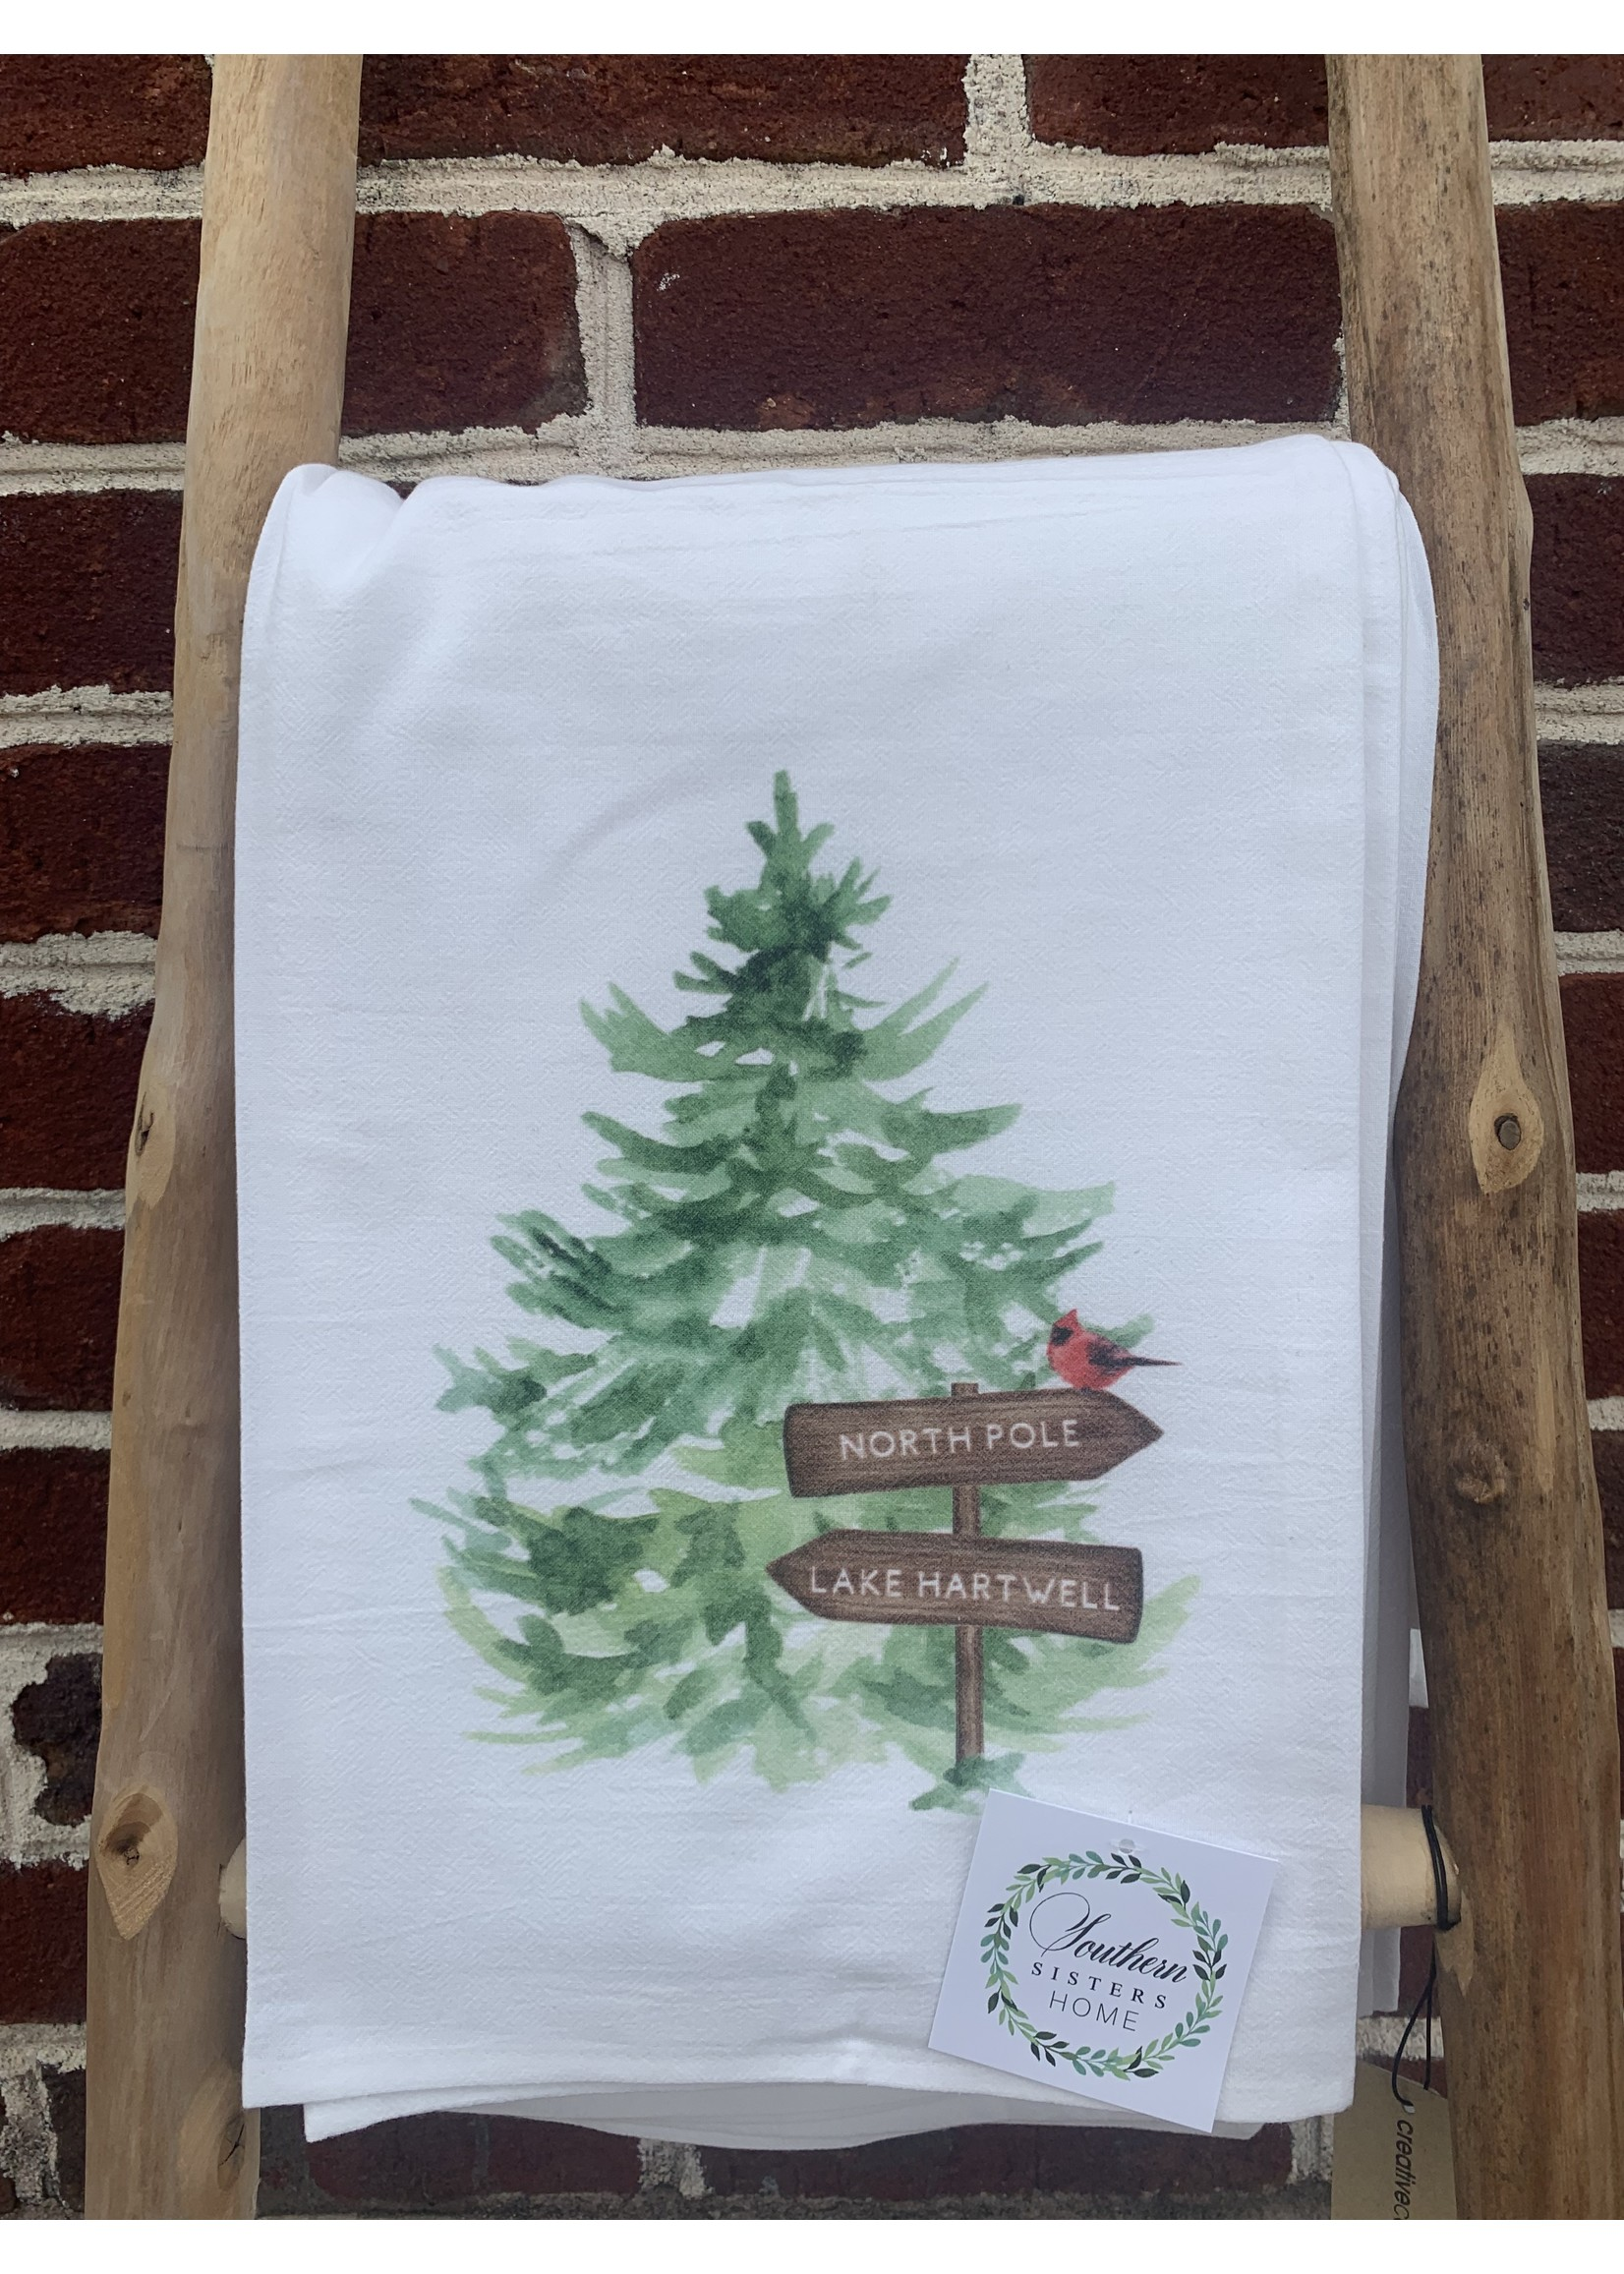 southern sisters Linen Towel - North Pole Lake Hartwell